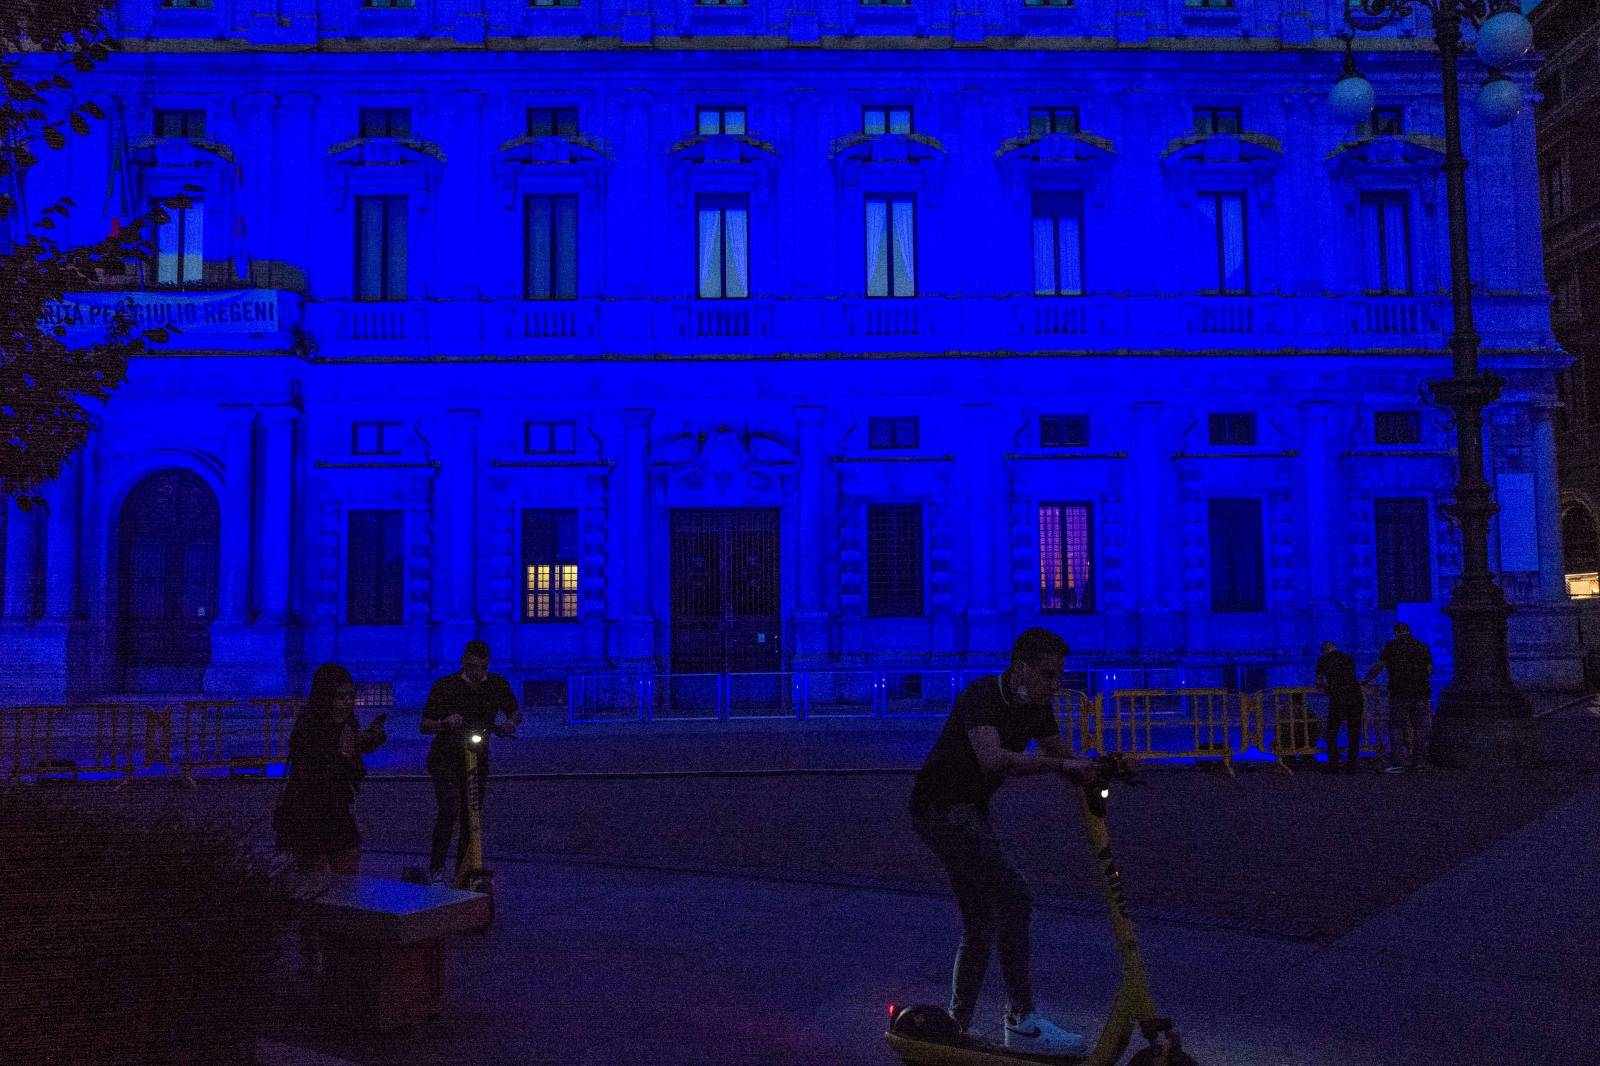 Milan. Palazzo Marino lights up blue to commemorate the day in honor of migrants